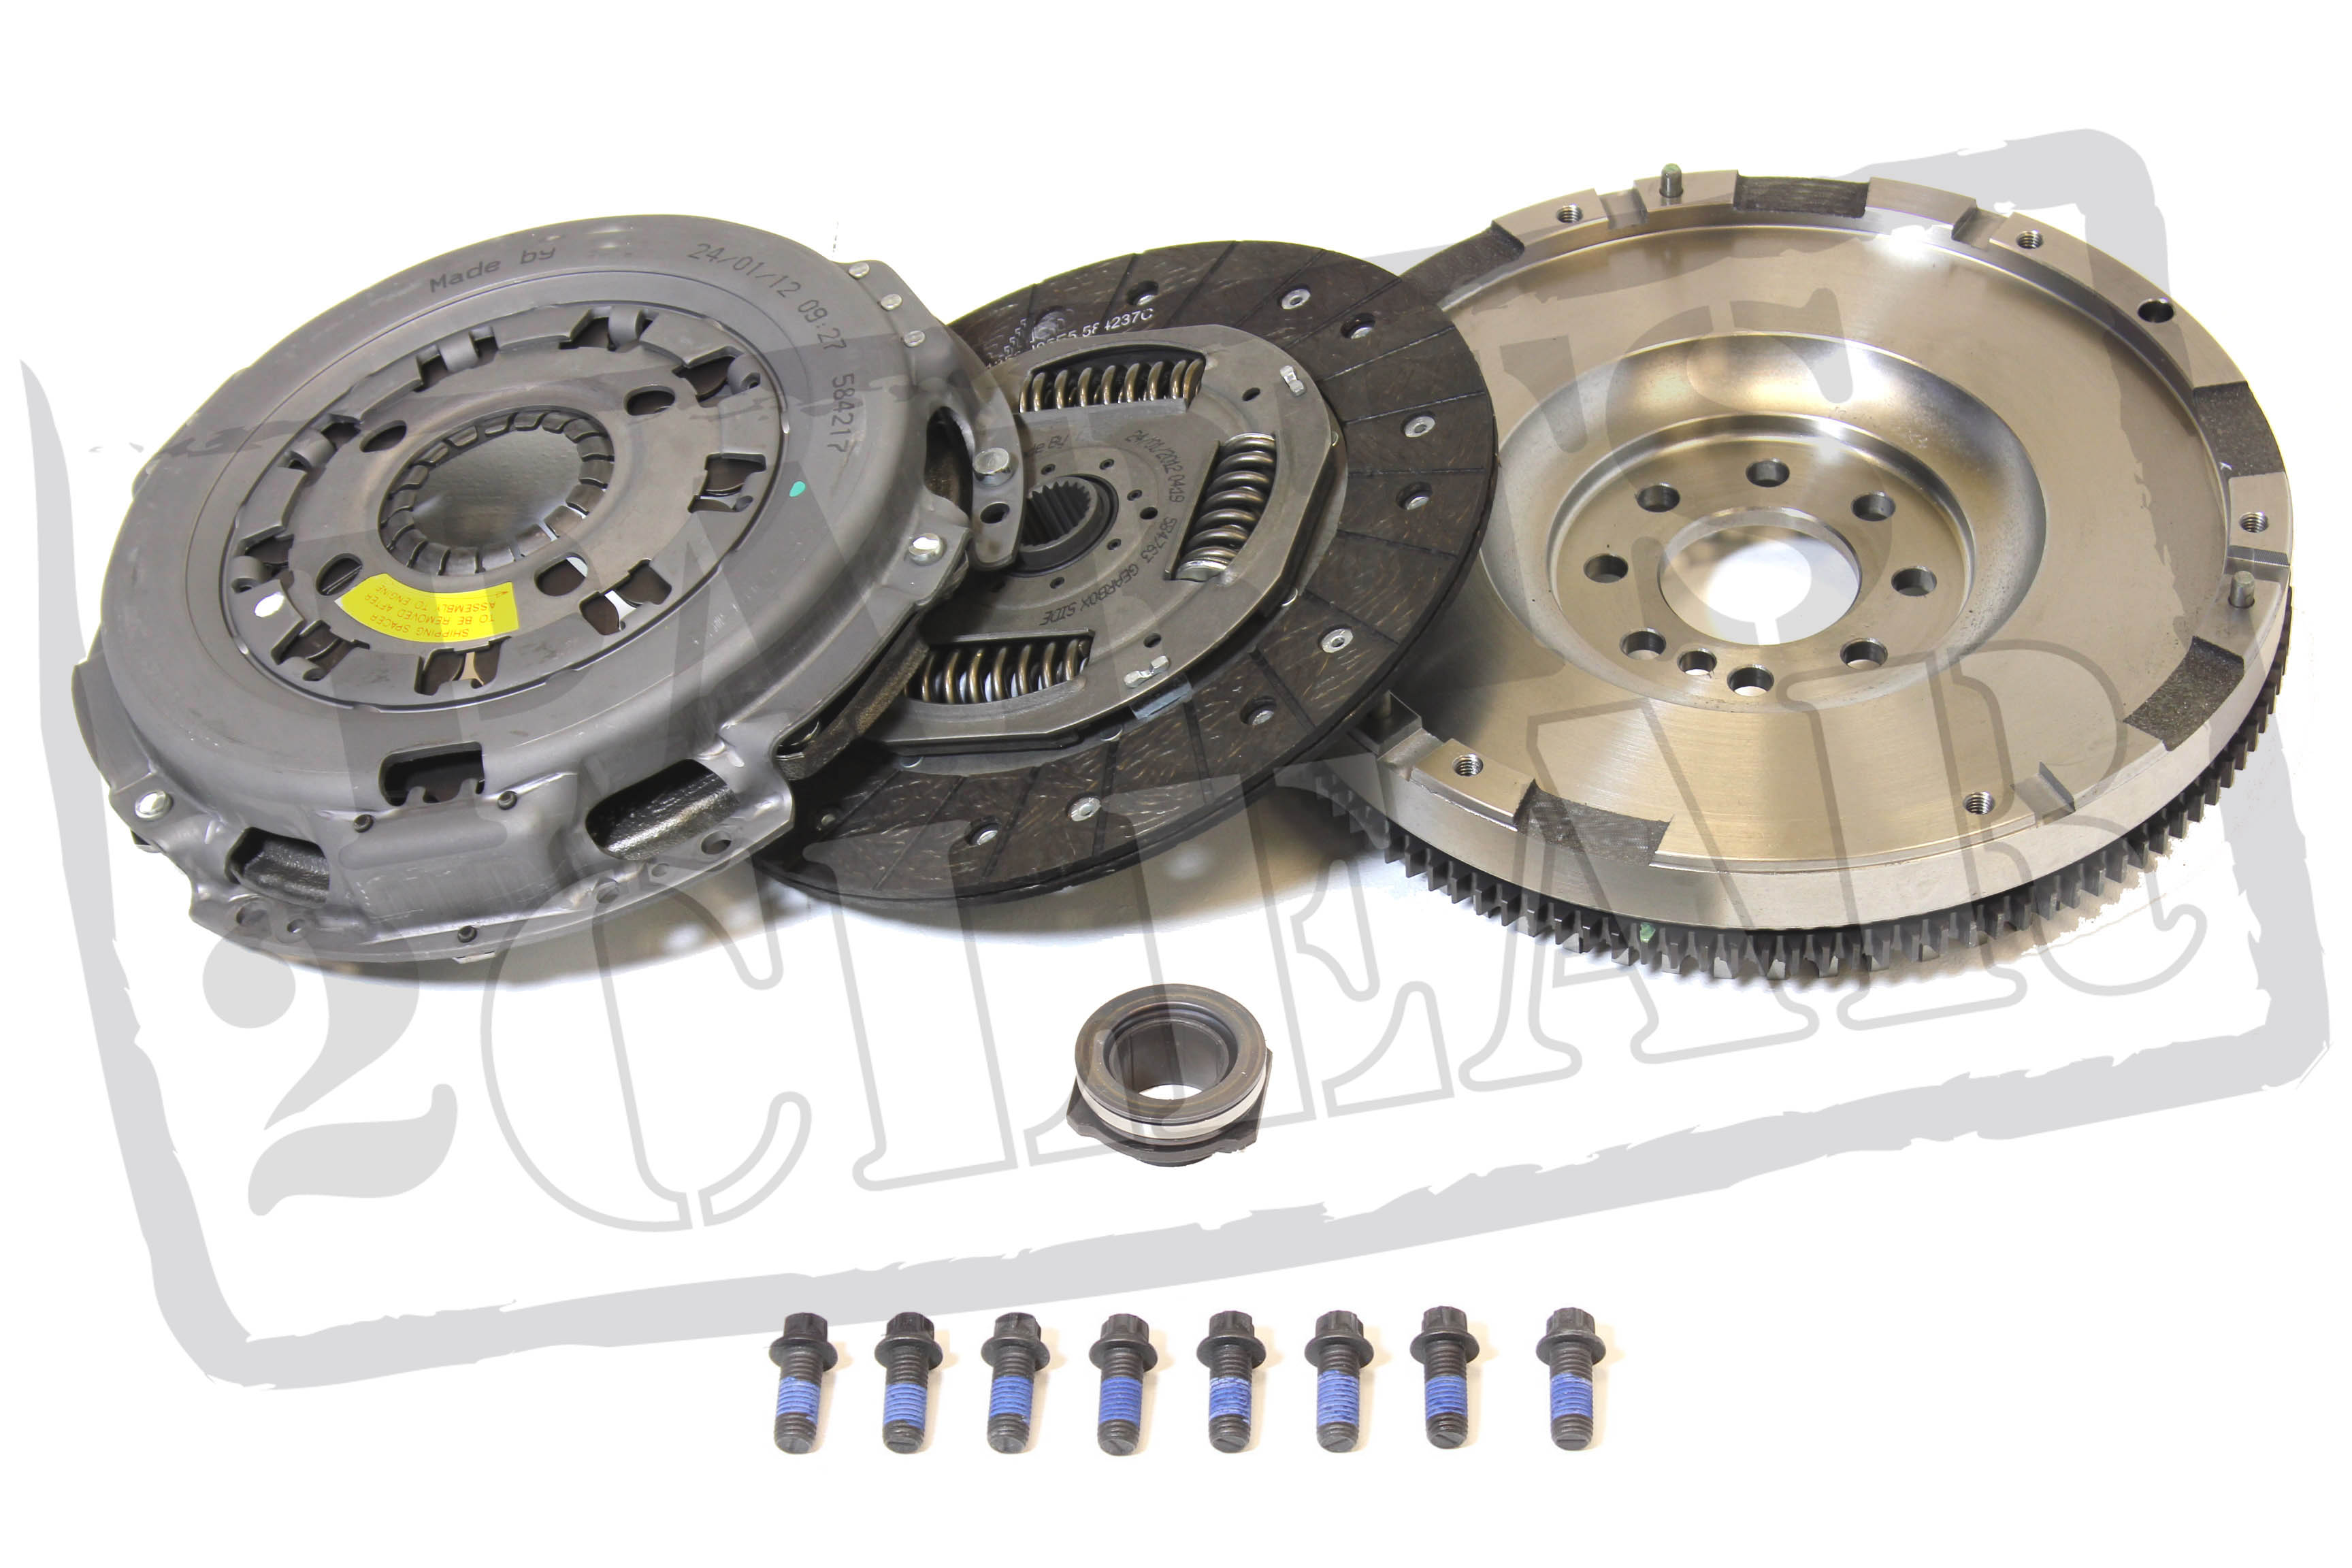 peugeot 407 sw 6e 2 0 hdi 135 single mass dmf clutch kit 136 5 04 9 06 ebay. Black Bedroom Furniture Sets. Home Design Ideas